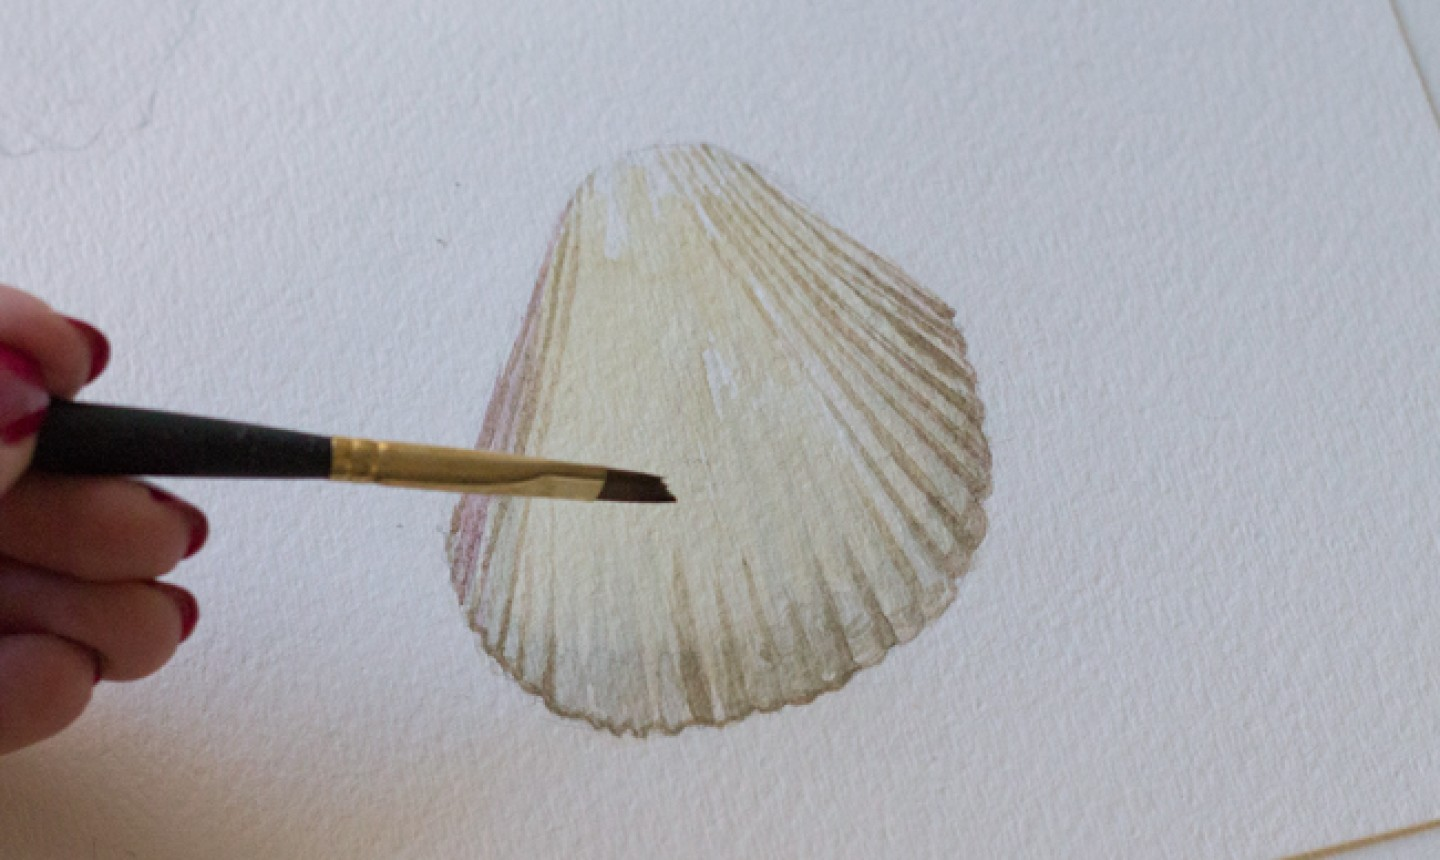 painting light tones on seashell